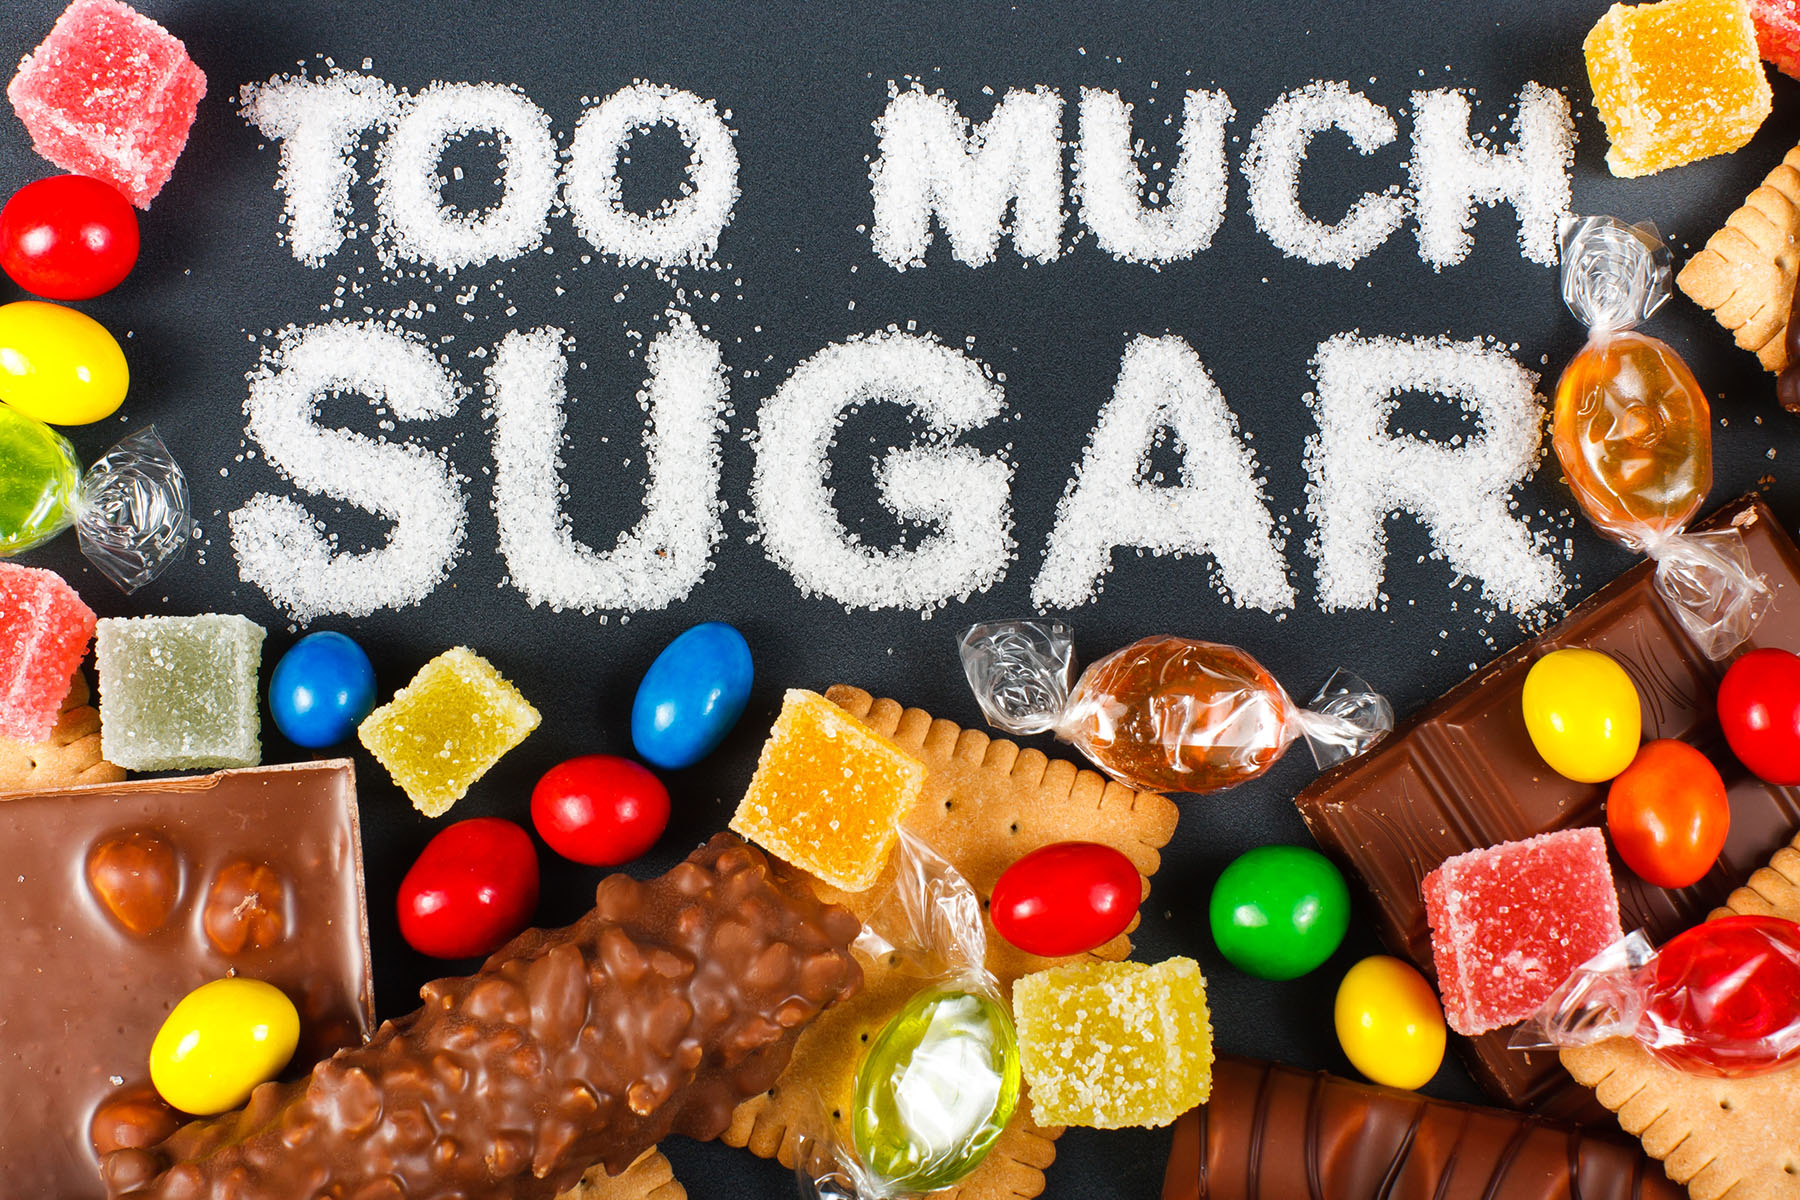 Unhealthy food concept - sugar